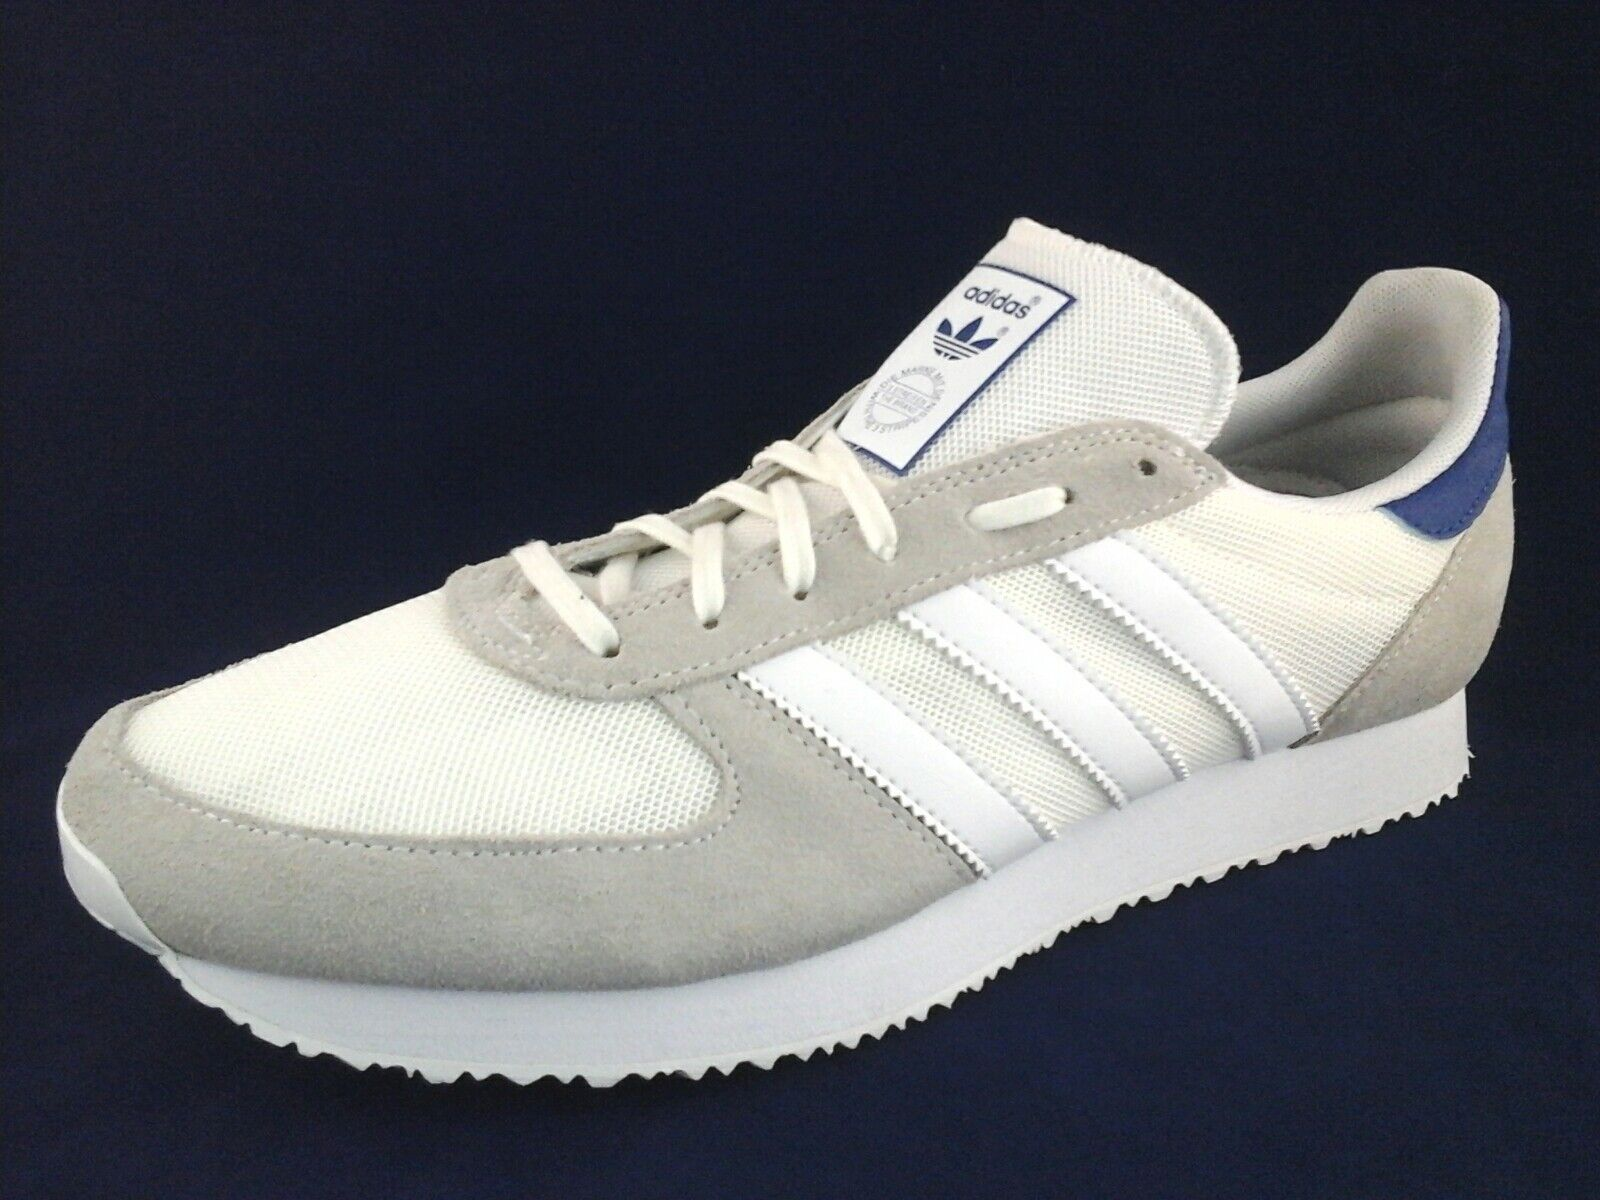 best service 2fa7c 036de Adidas Originals ZX Racer Women s Sneakers Shoes S32230 US 10 EU 42 2 3 New